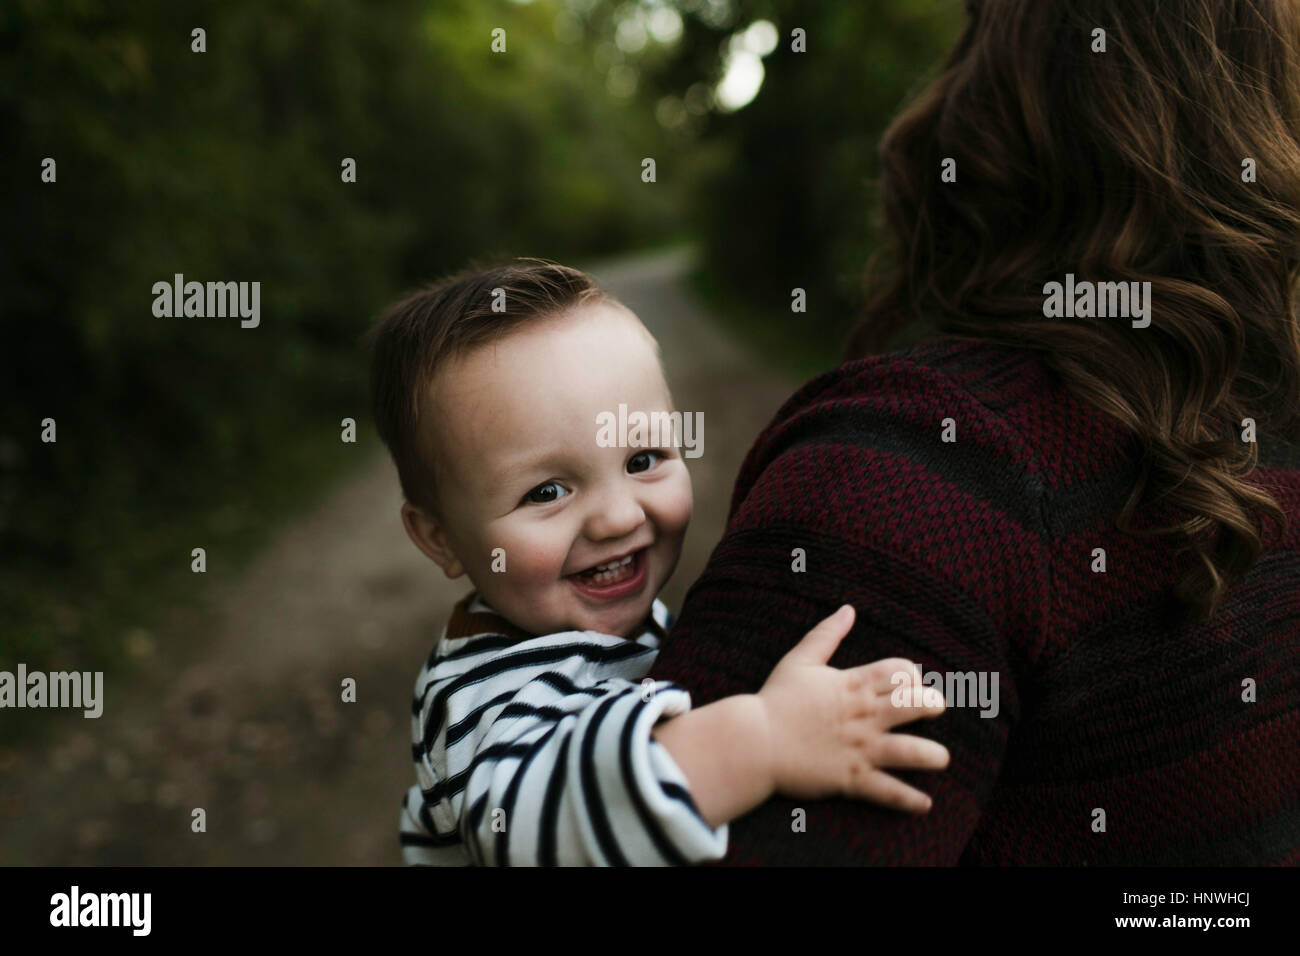 Baby Boy in mother's arms looking at camera smiling Photo Stock